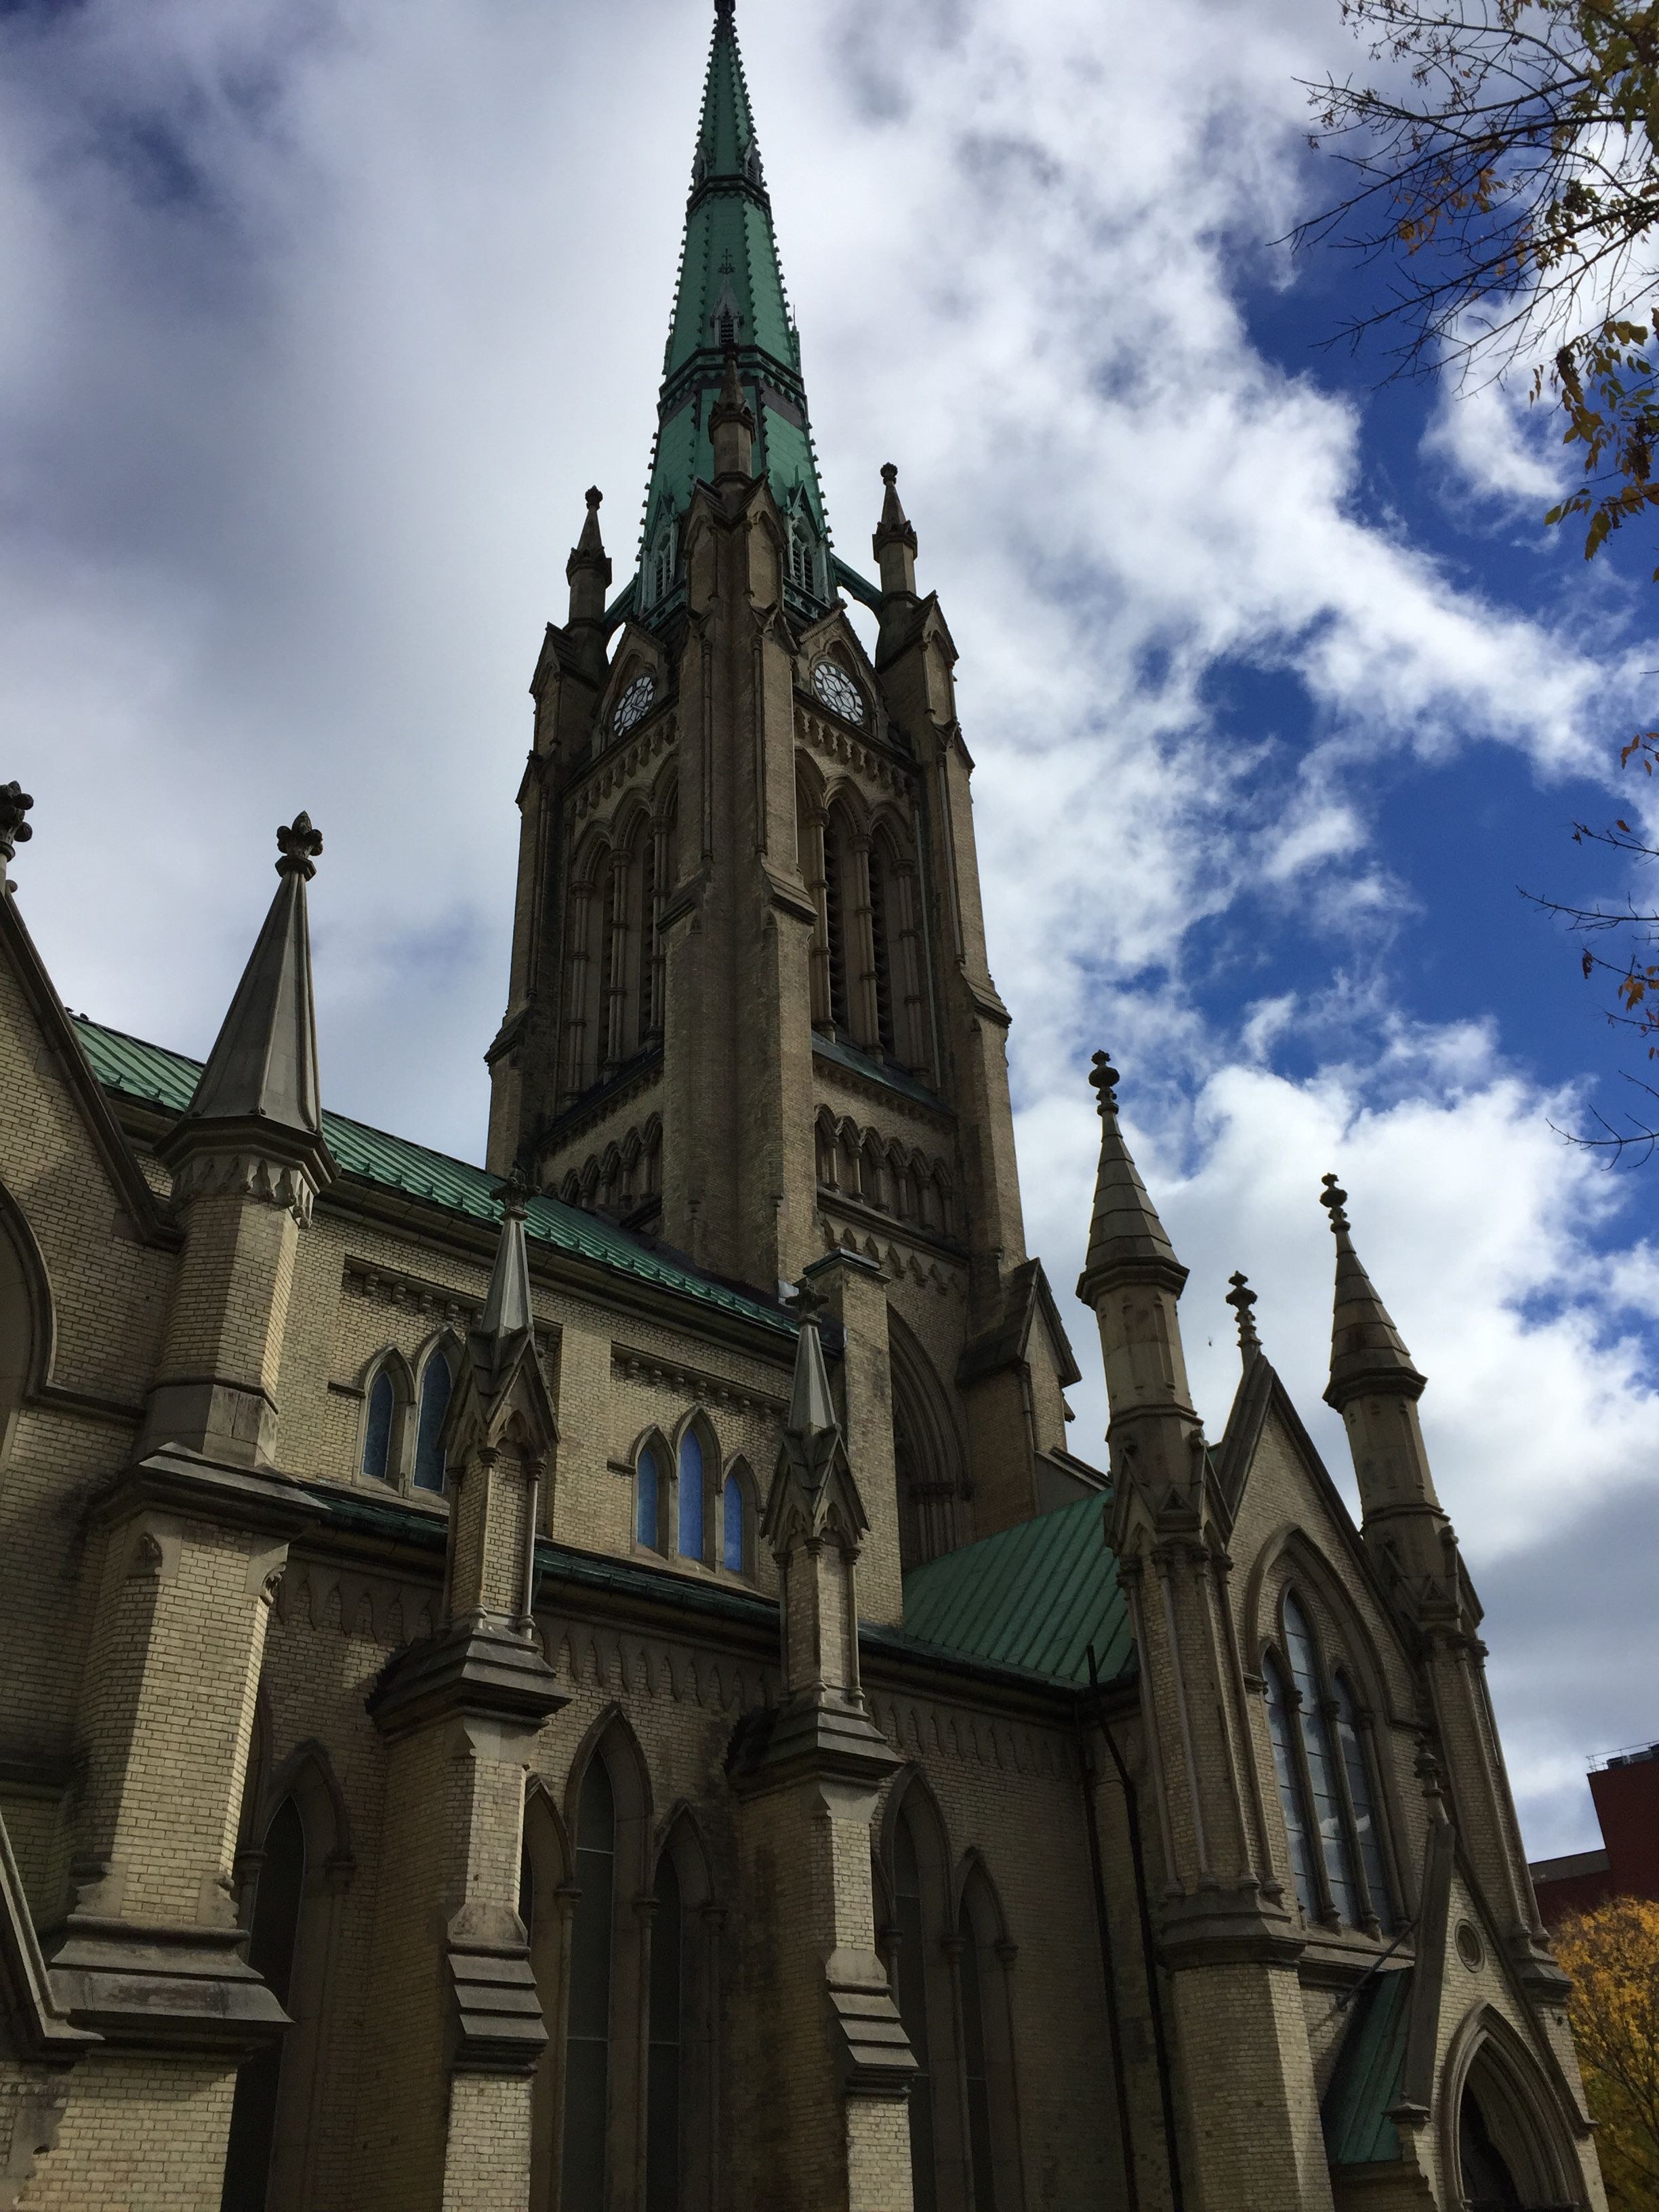 The Church of Canada (Anglican Church) in the Old Town area…